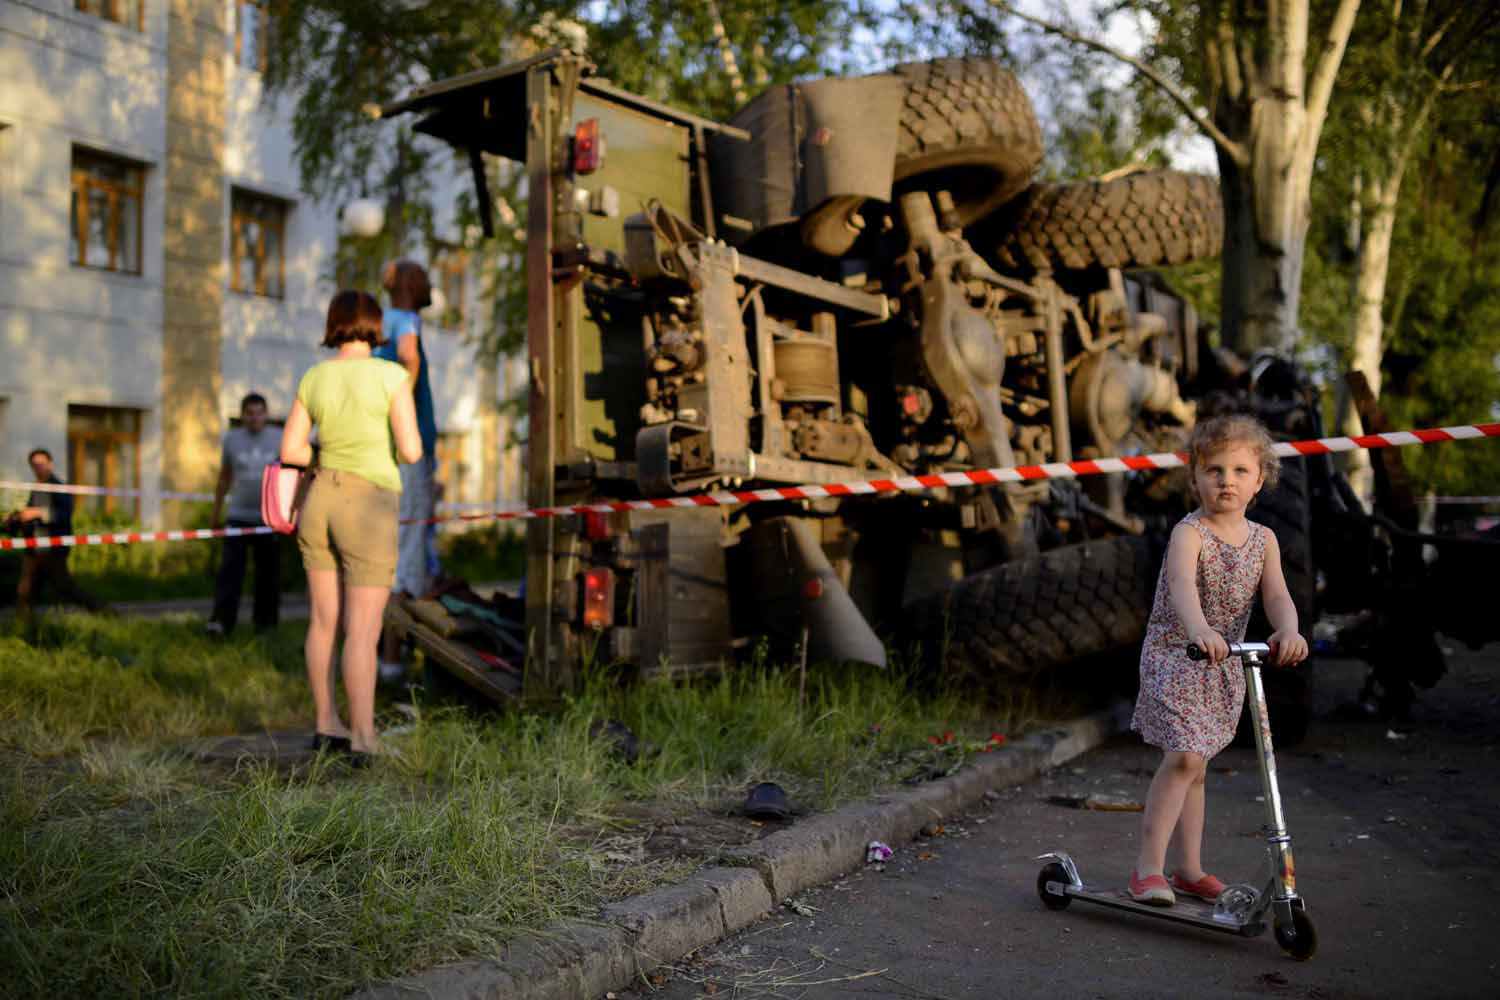 May 28, 2014. A  Ukrainian girl playing near the wrecked truck of supporters of the self-proclaimed 'Donetsk People's Republic' in Donetsk, Ukraine.